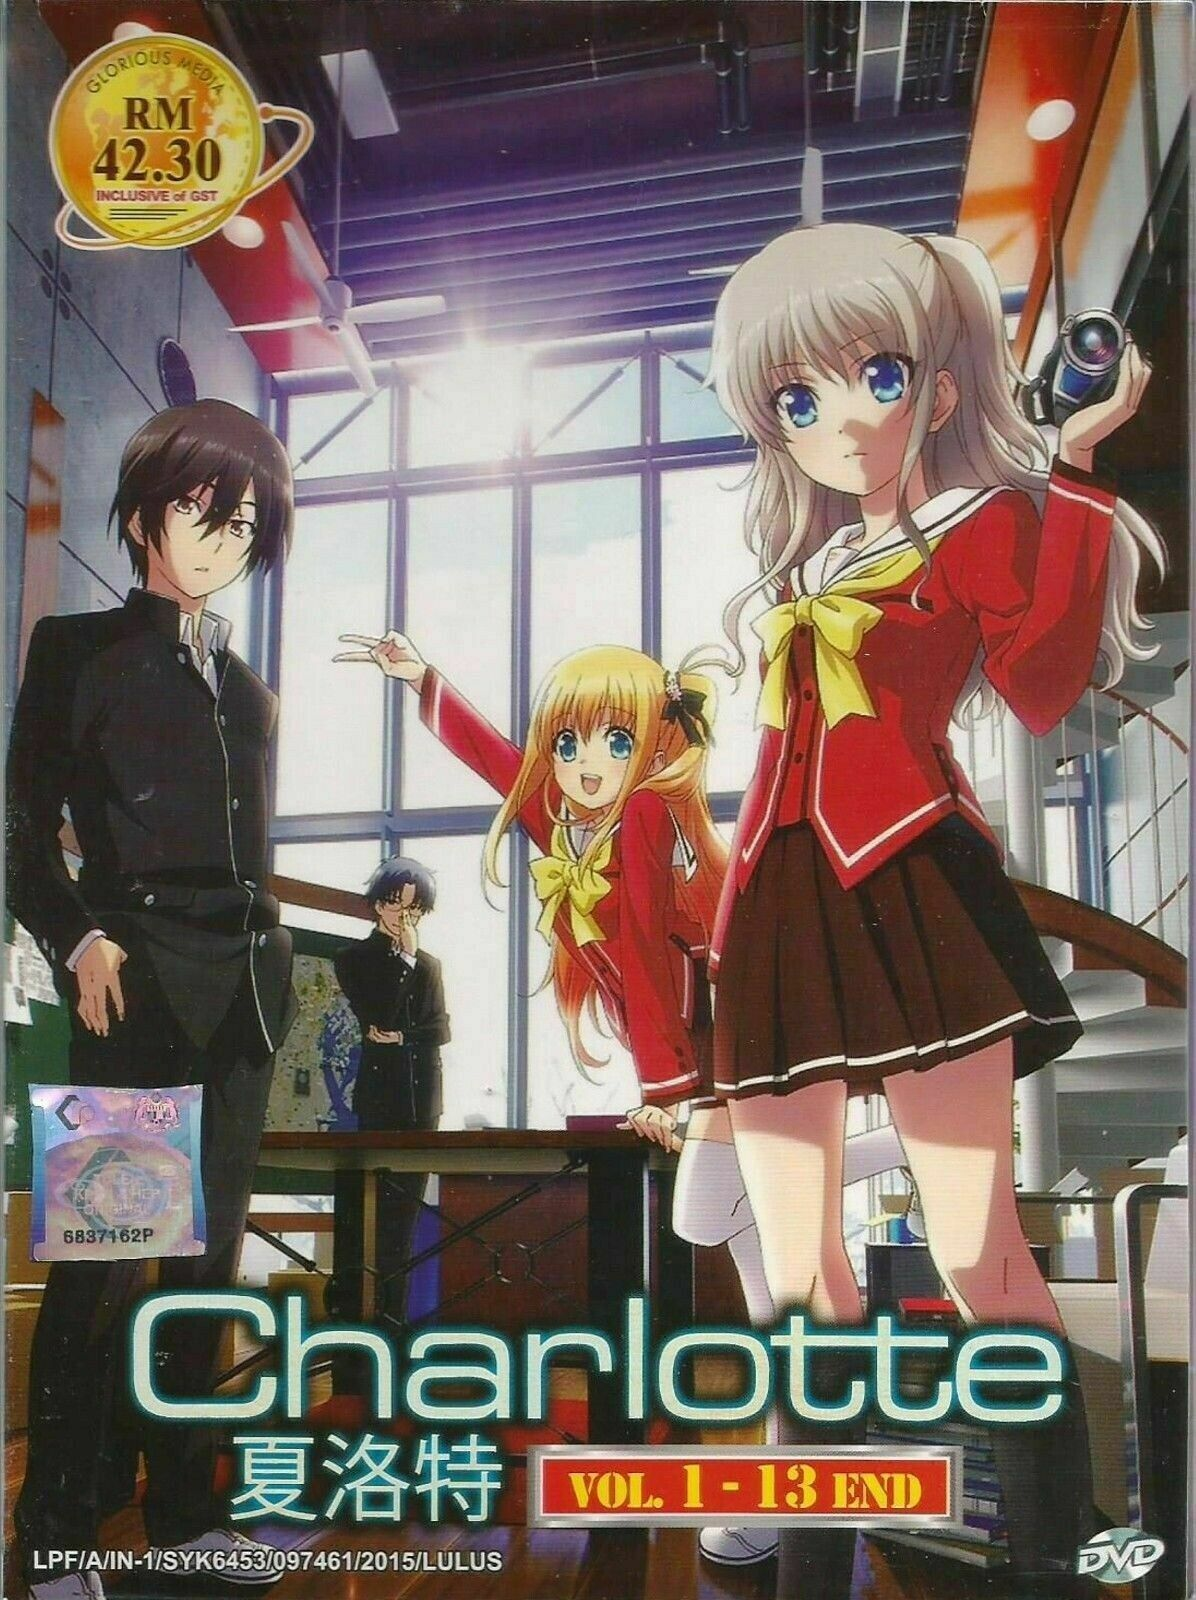 CHARLOTTE VOL.1-13 END COMPLETE BOX Ship From USA